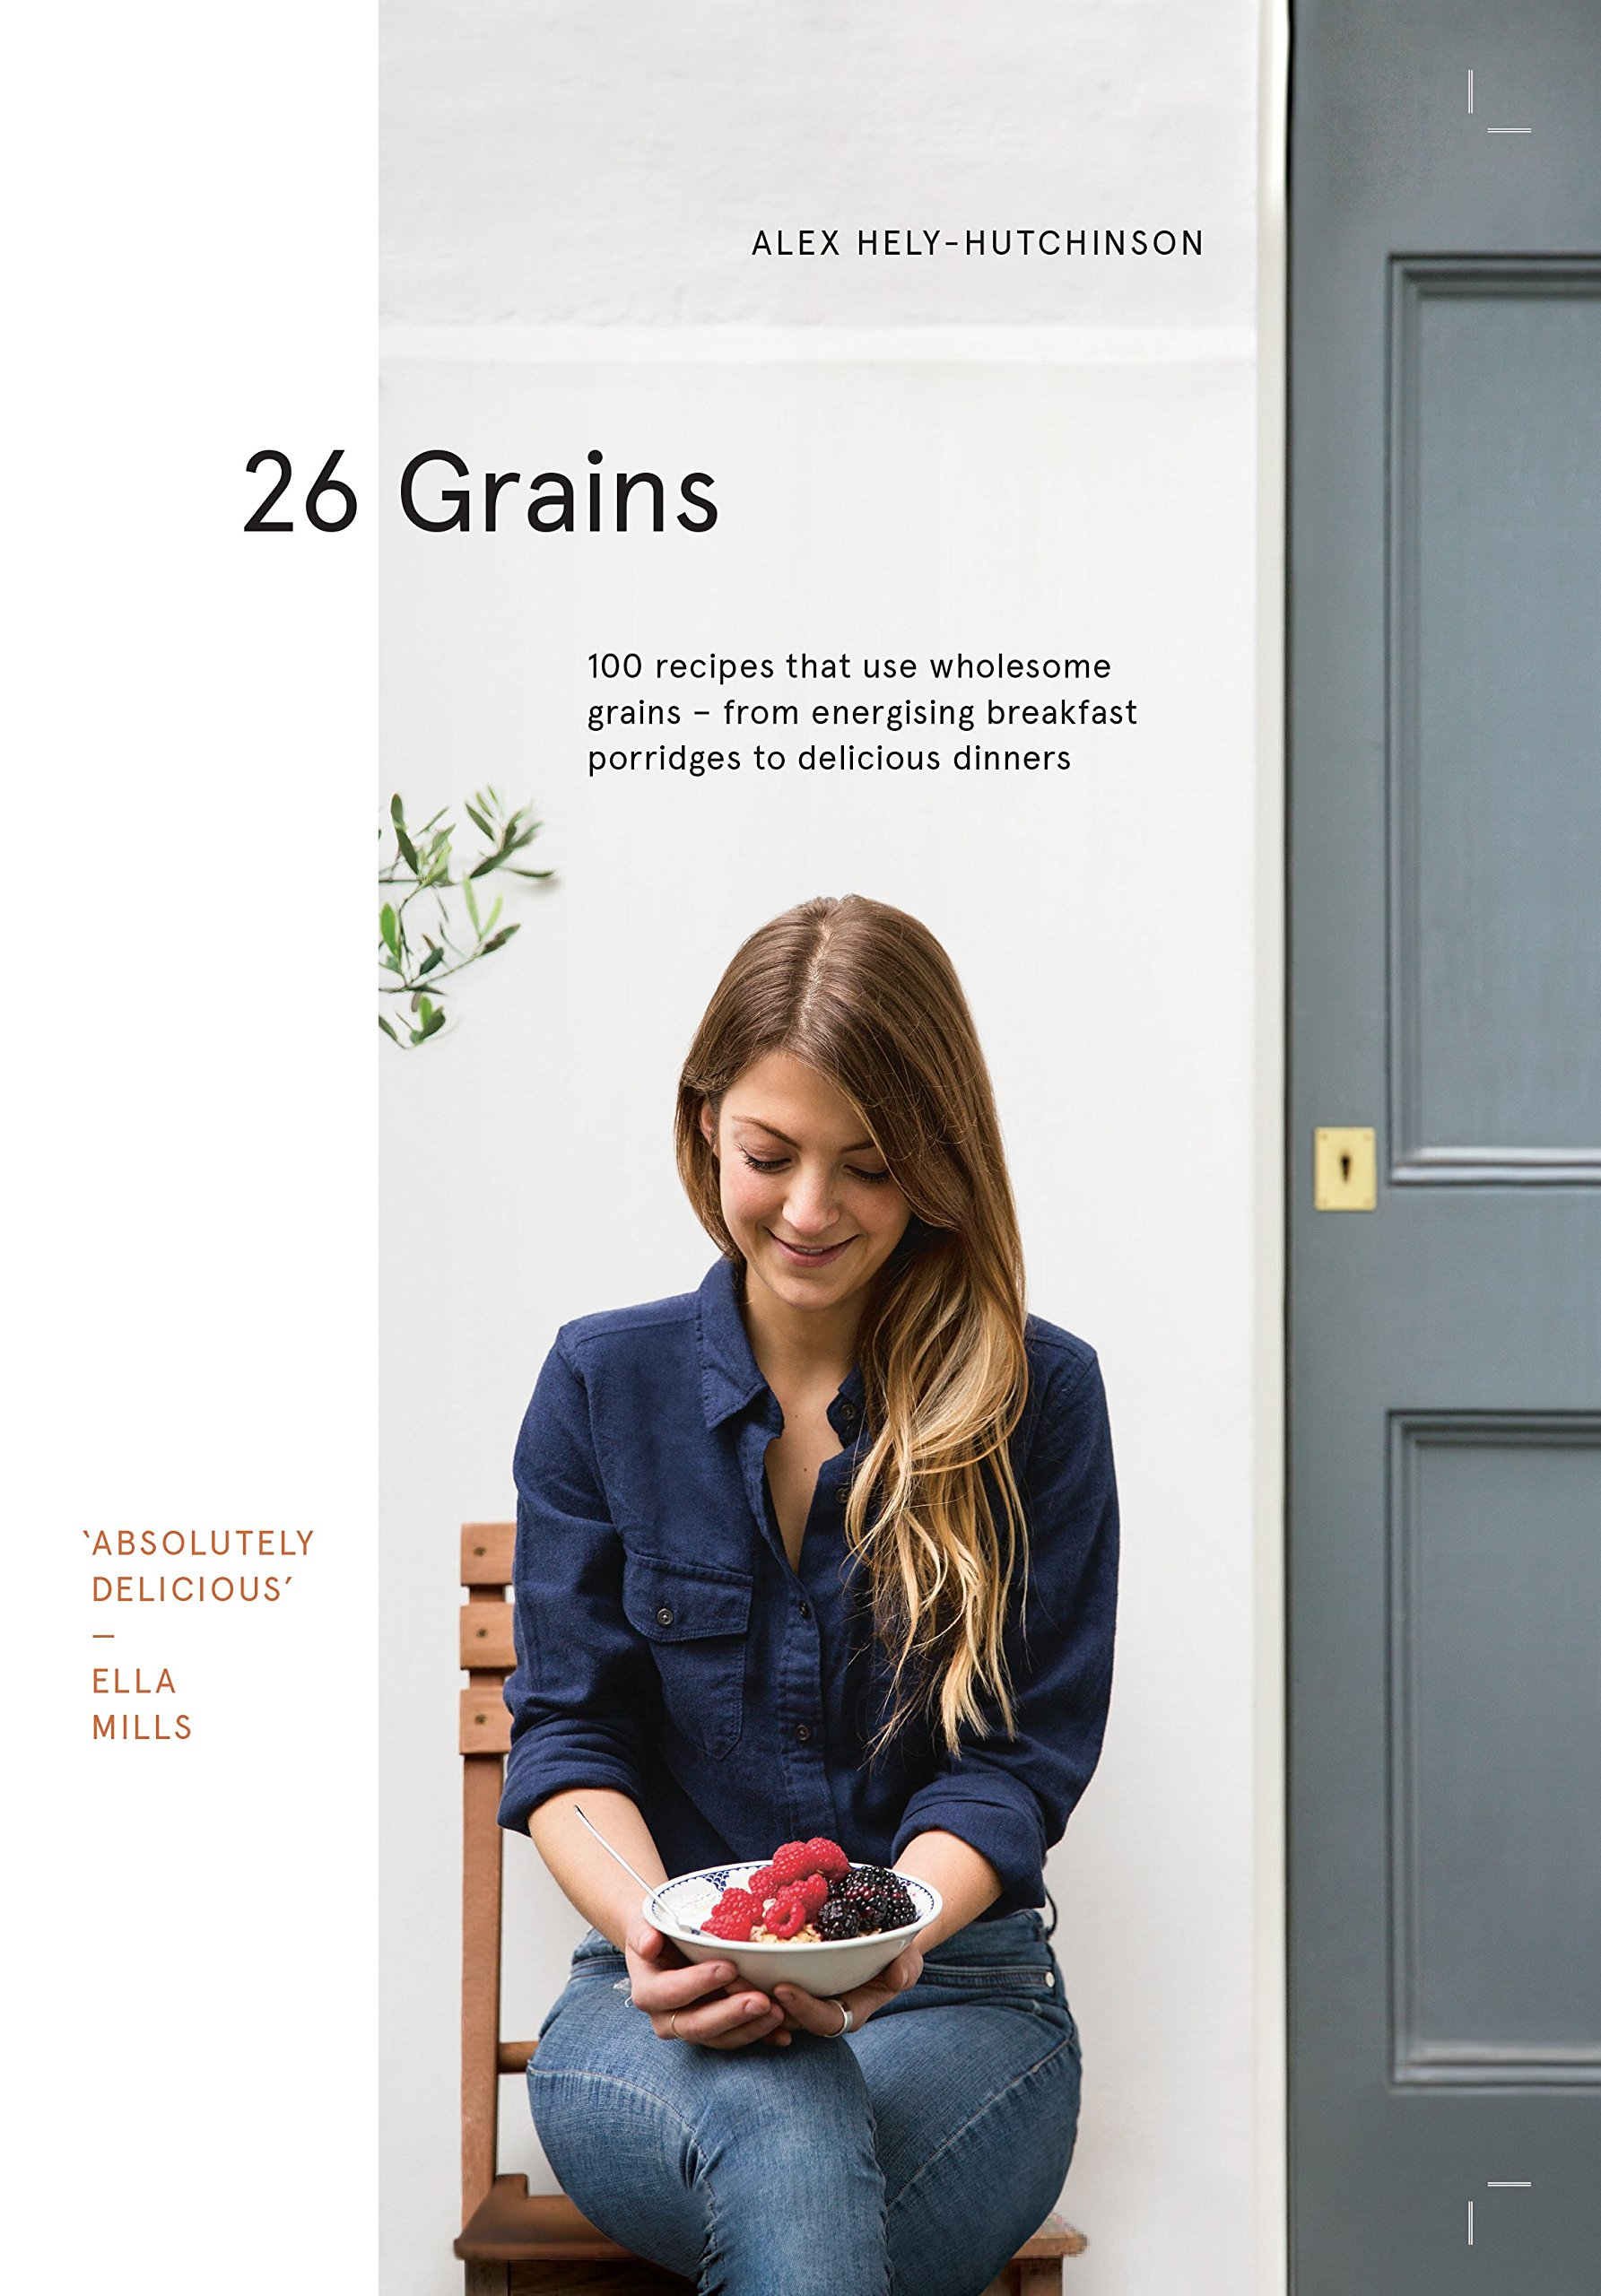 26 Grains by Alex Hely-Hutchinson